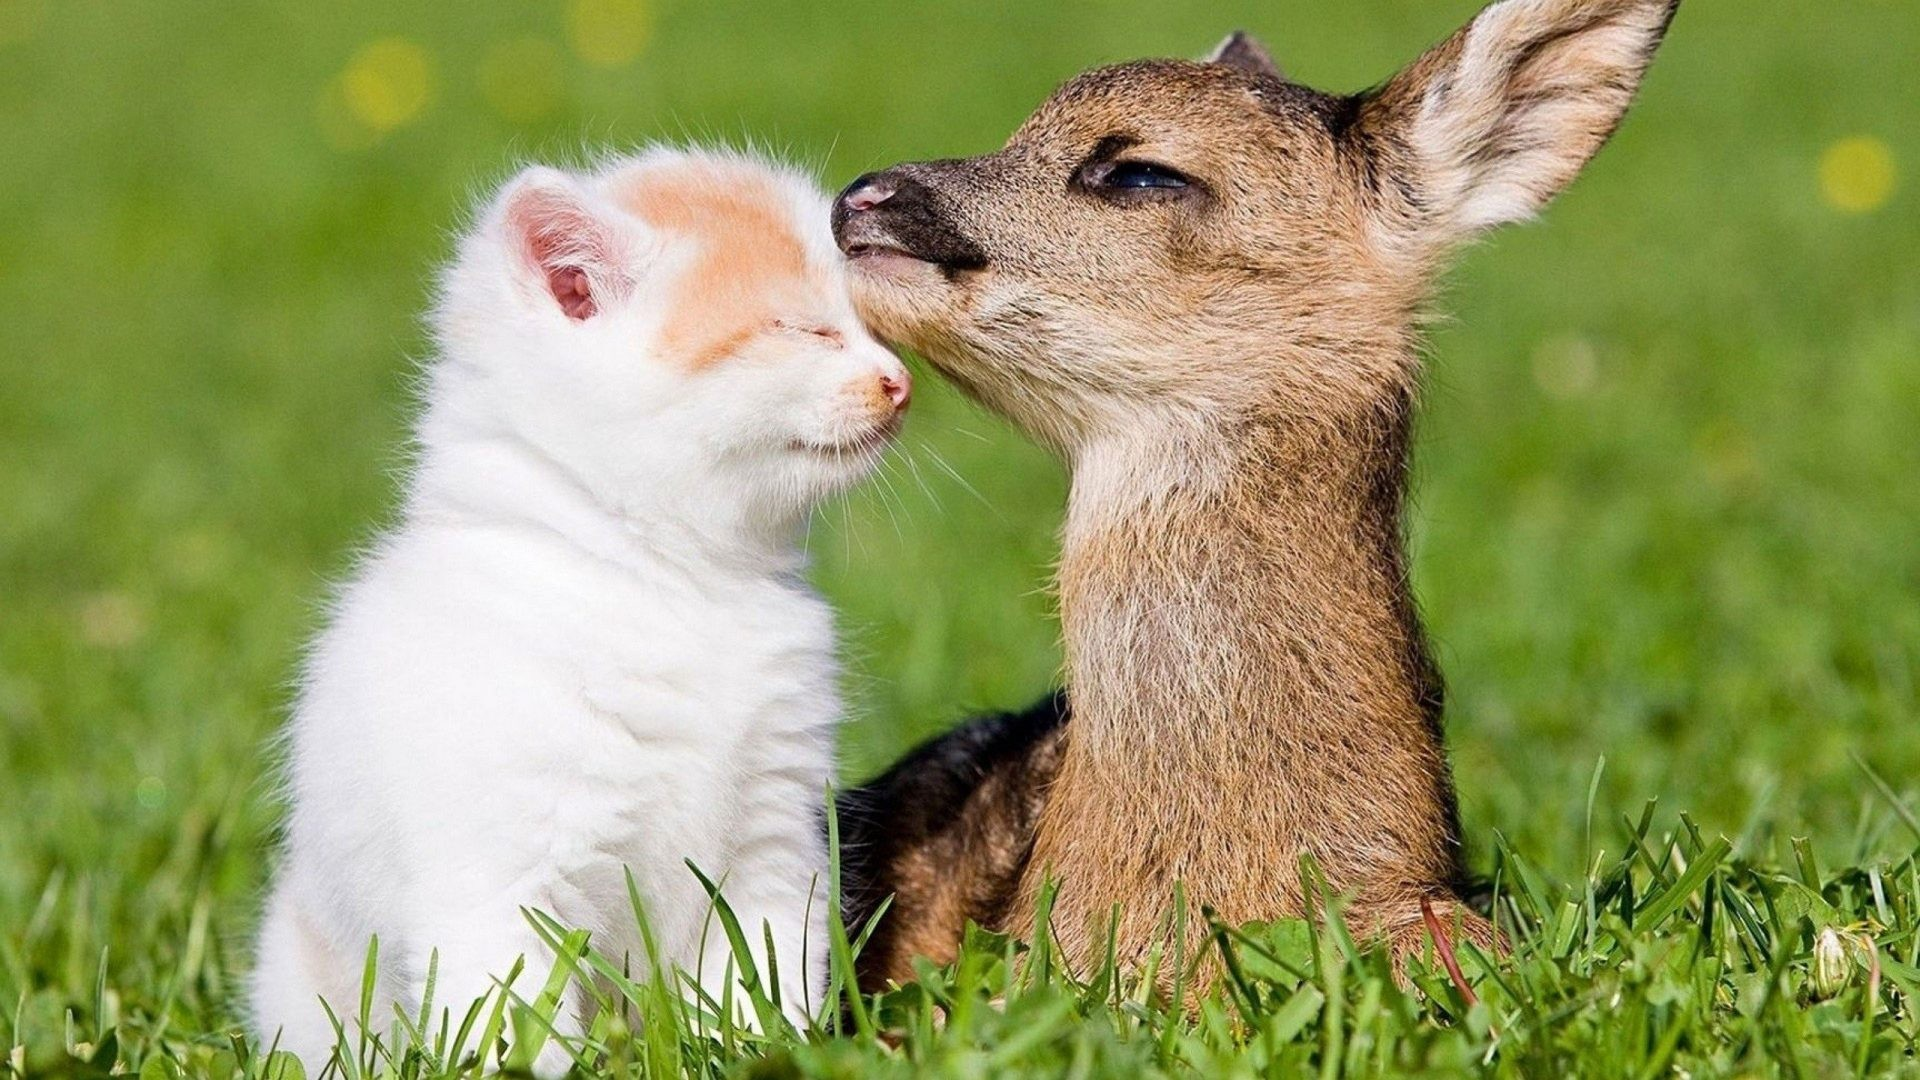 Cute Animal Wallpaper 62 Pictures